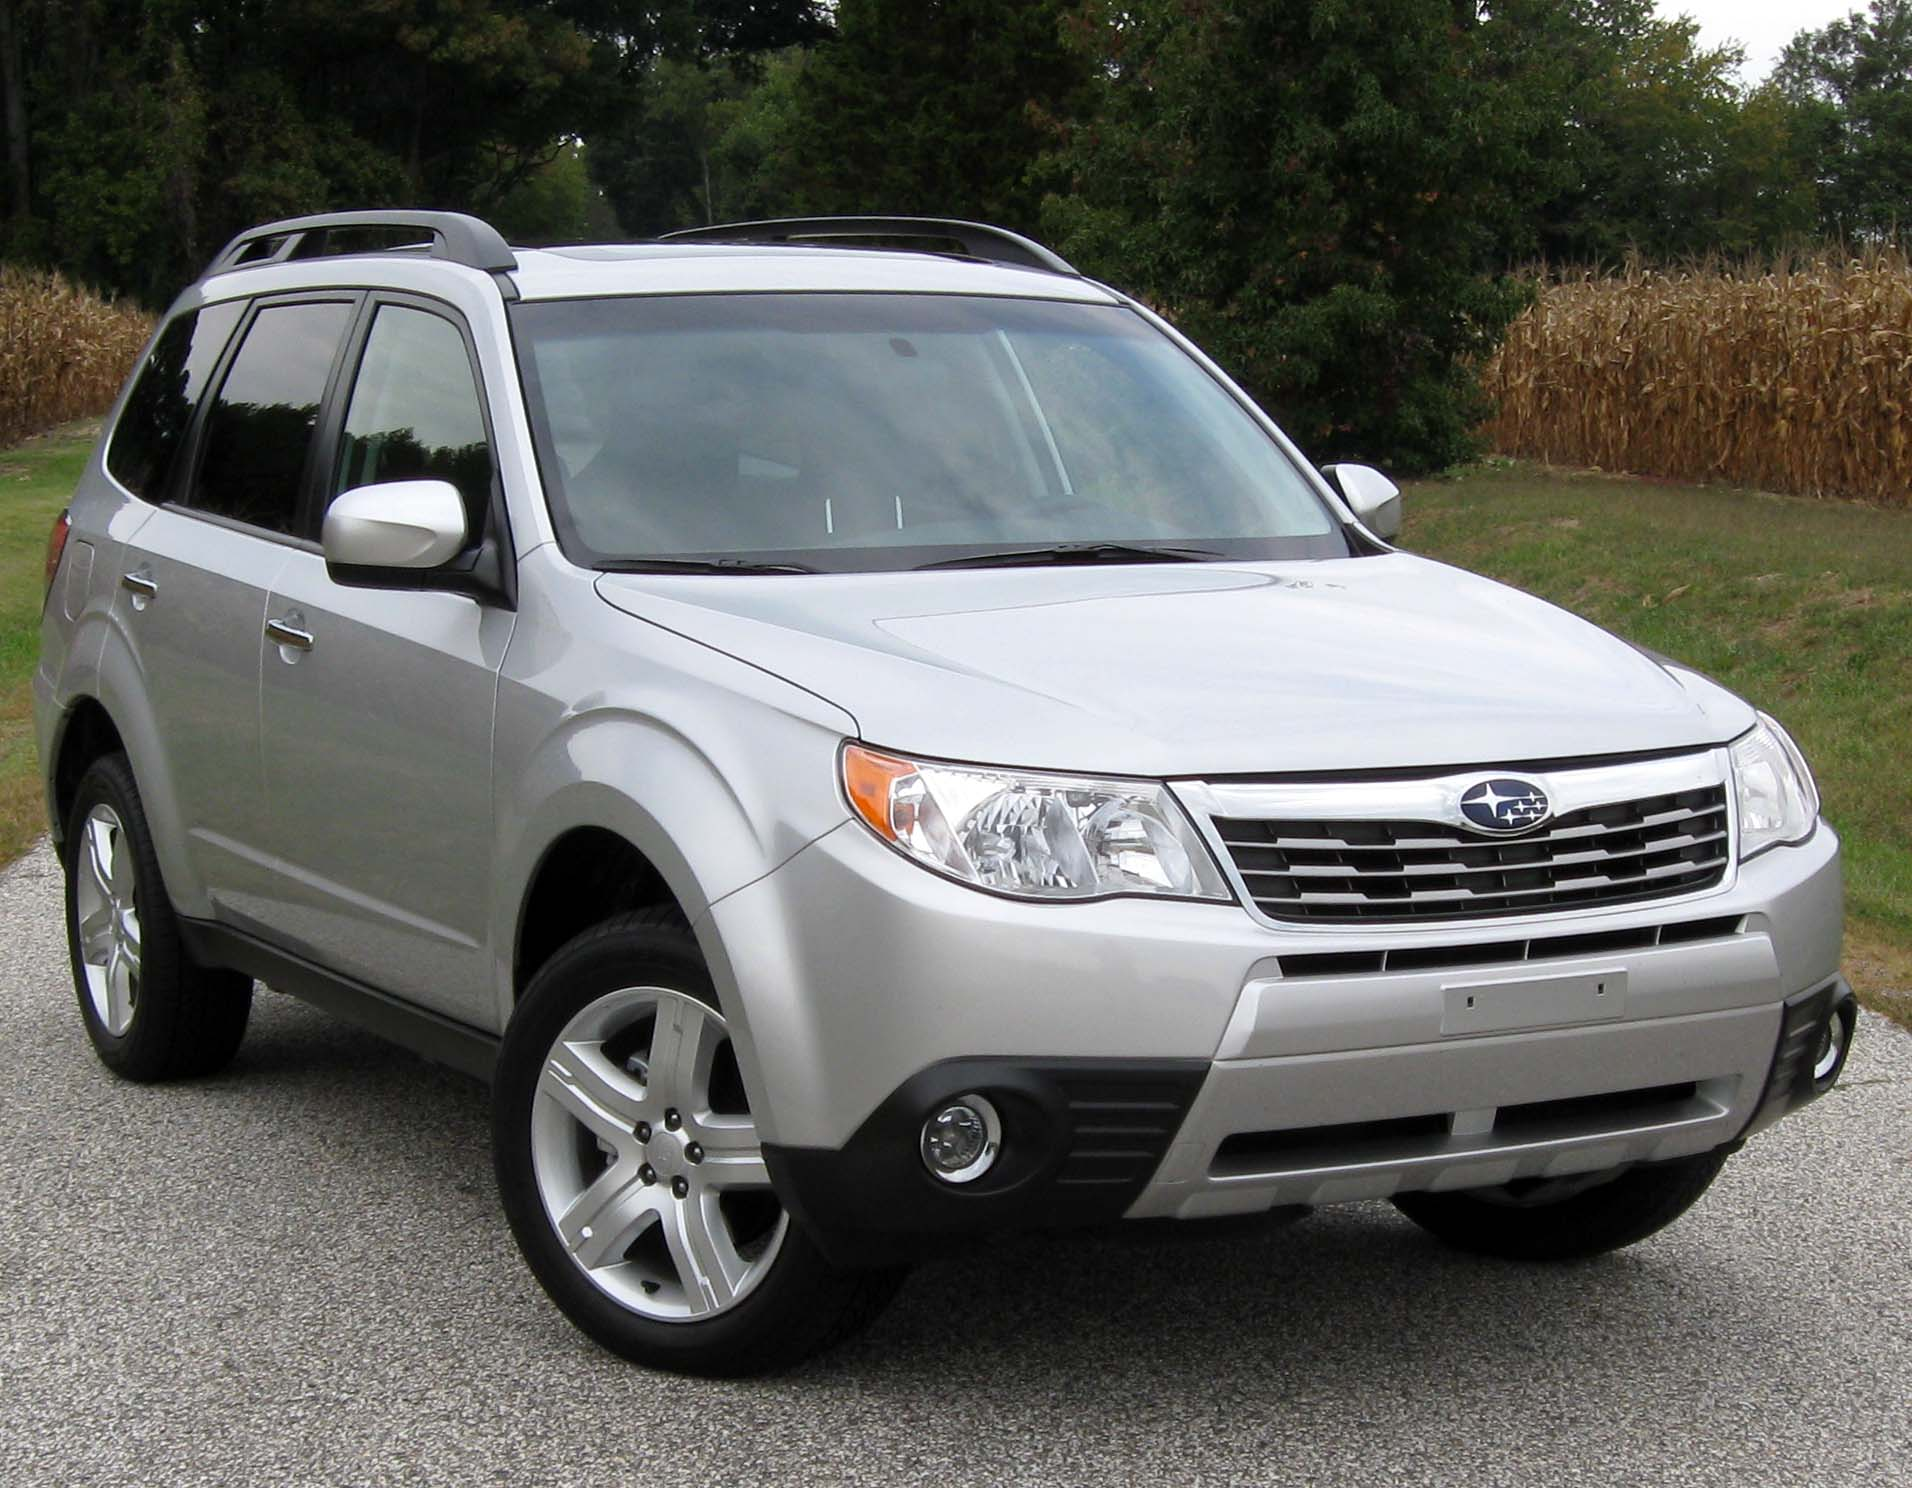 Subaru Forester Tractor & Construction Plant Wiki